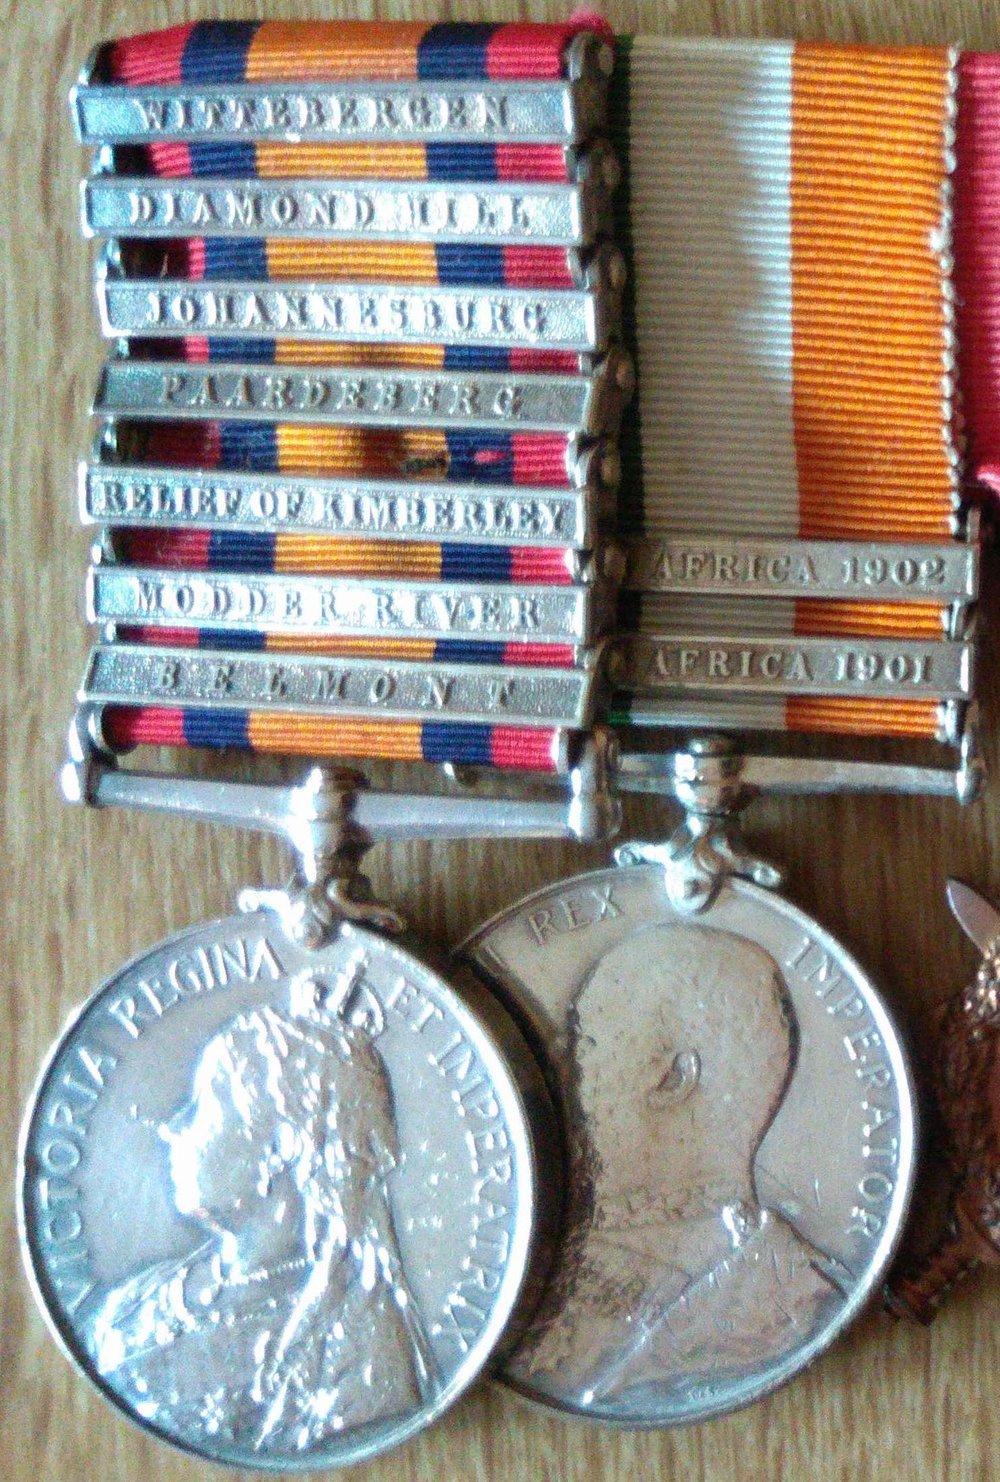 Walter's South African War medals.